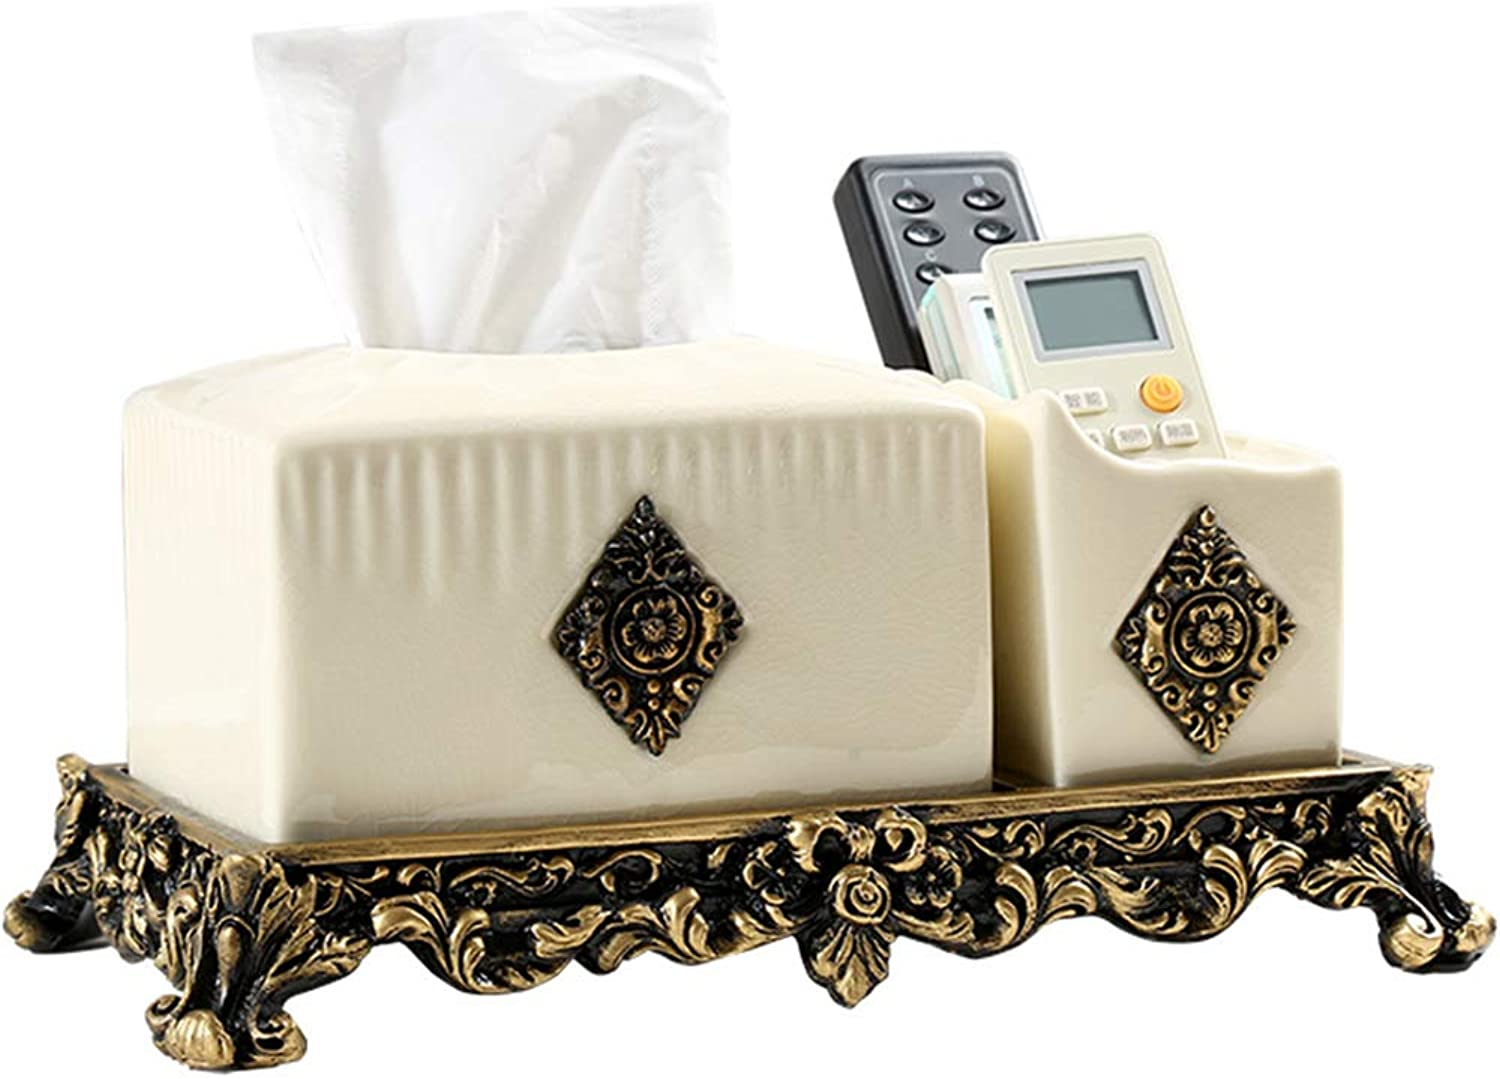 Tissue Box Ceramic Multi-Function Creative Continental Desktop Living Room Coffee Table